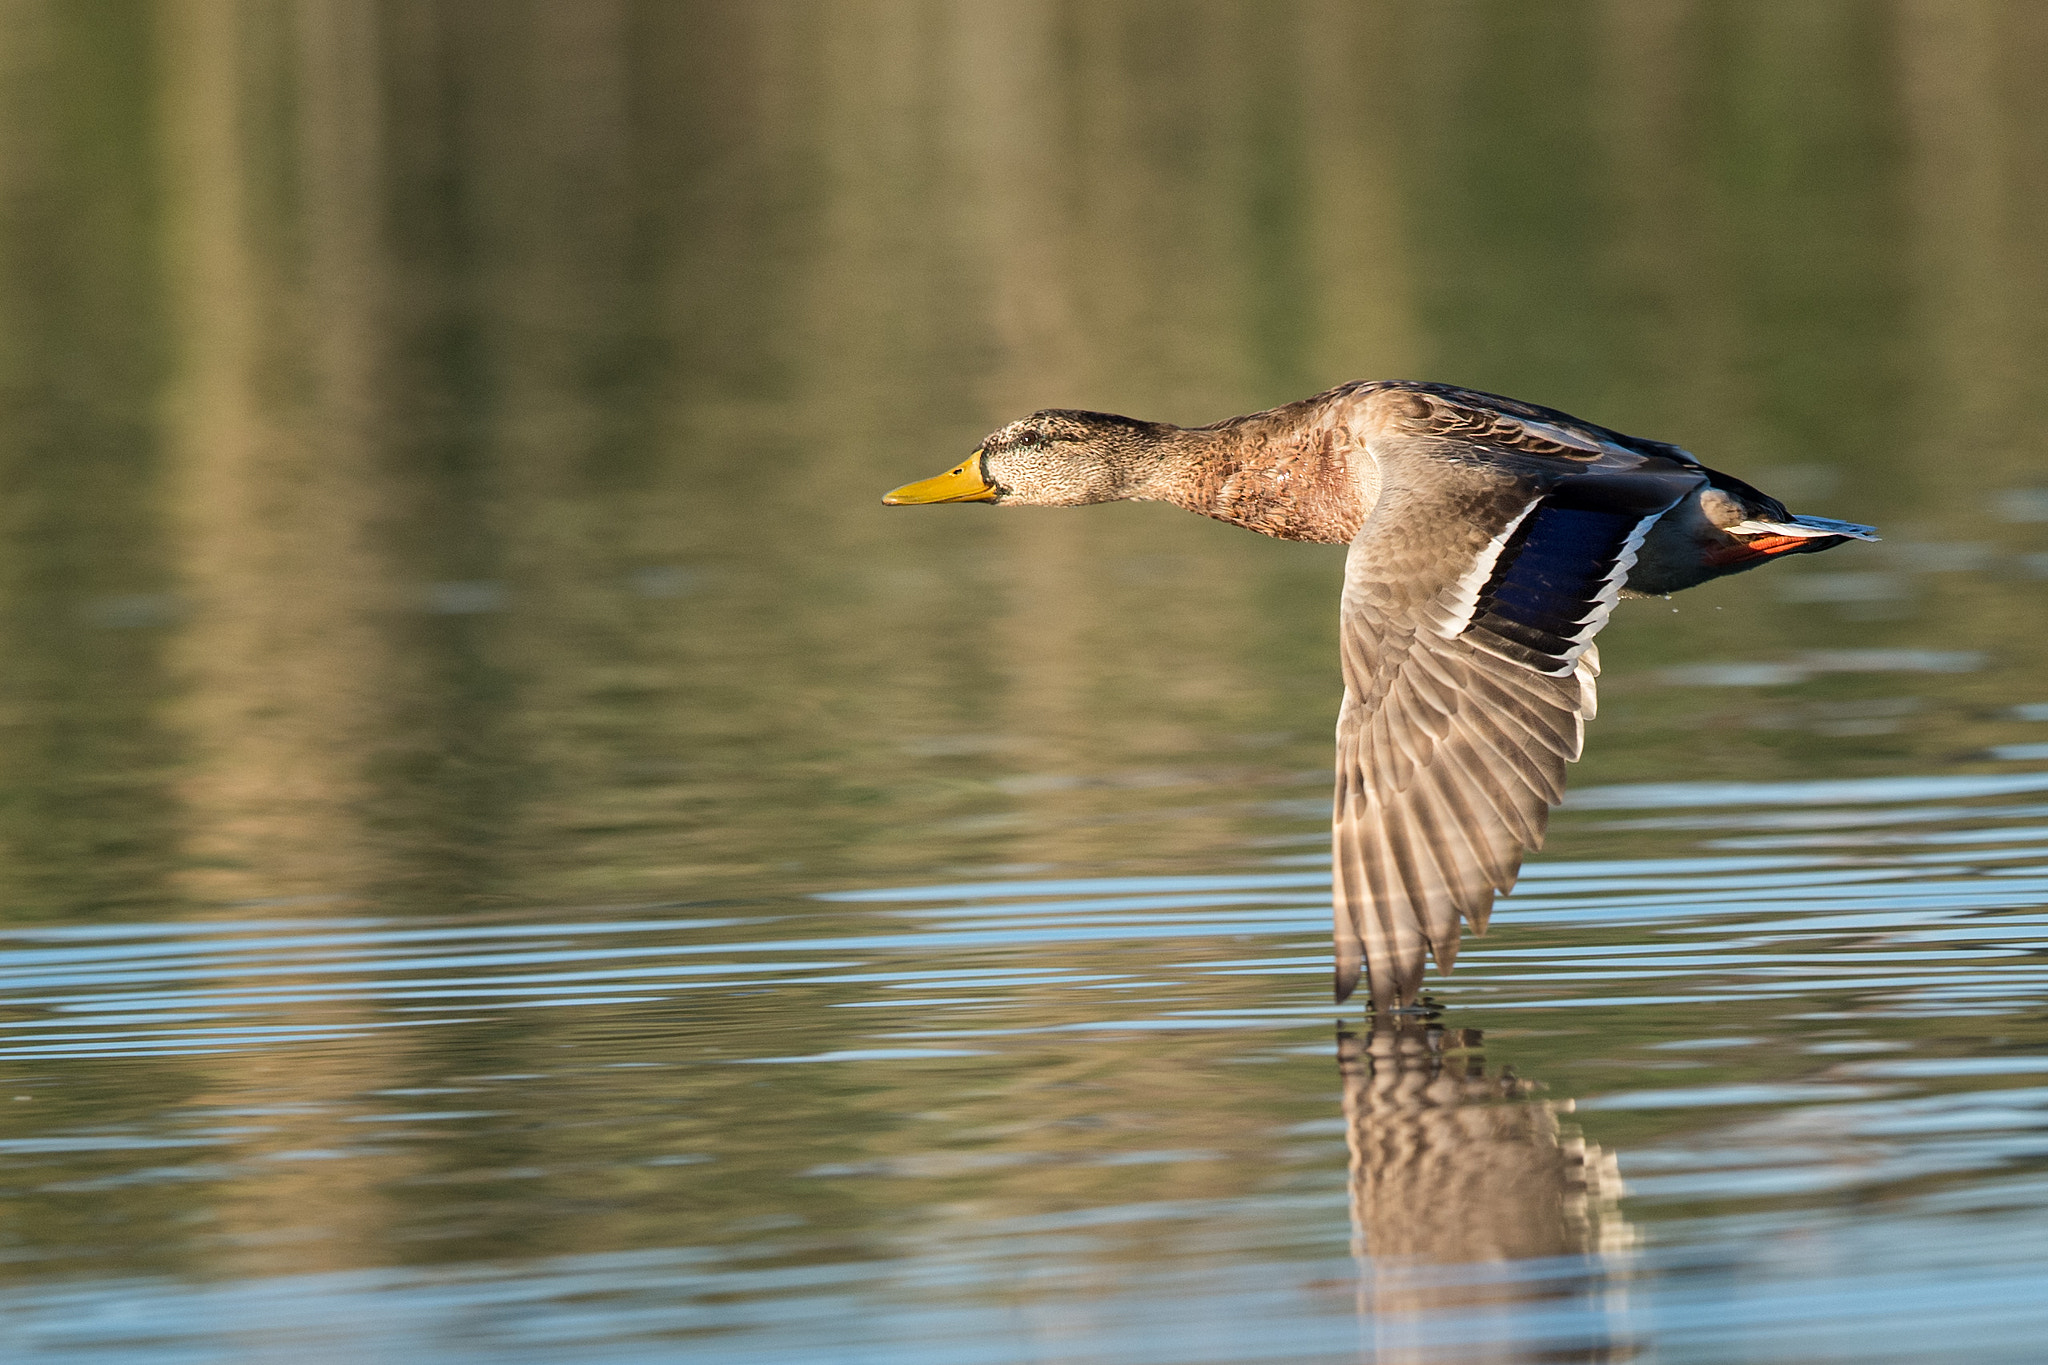 Photograph Fliegende Ente | Flying duck (2a) by Franz Engels on 500px